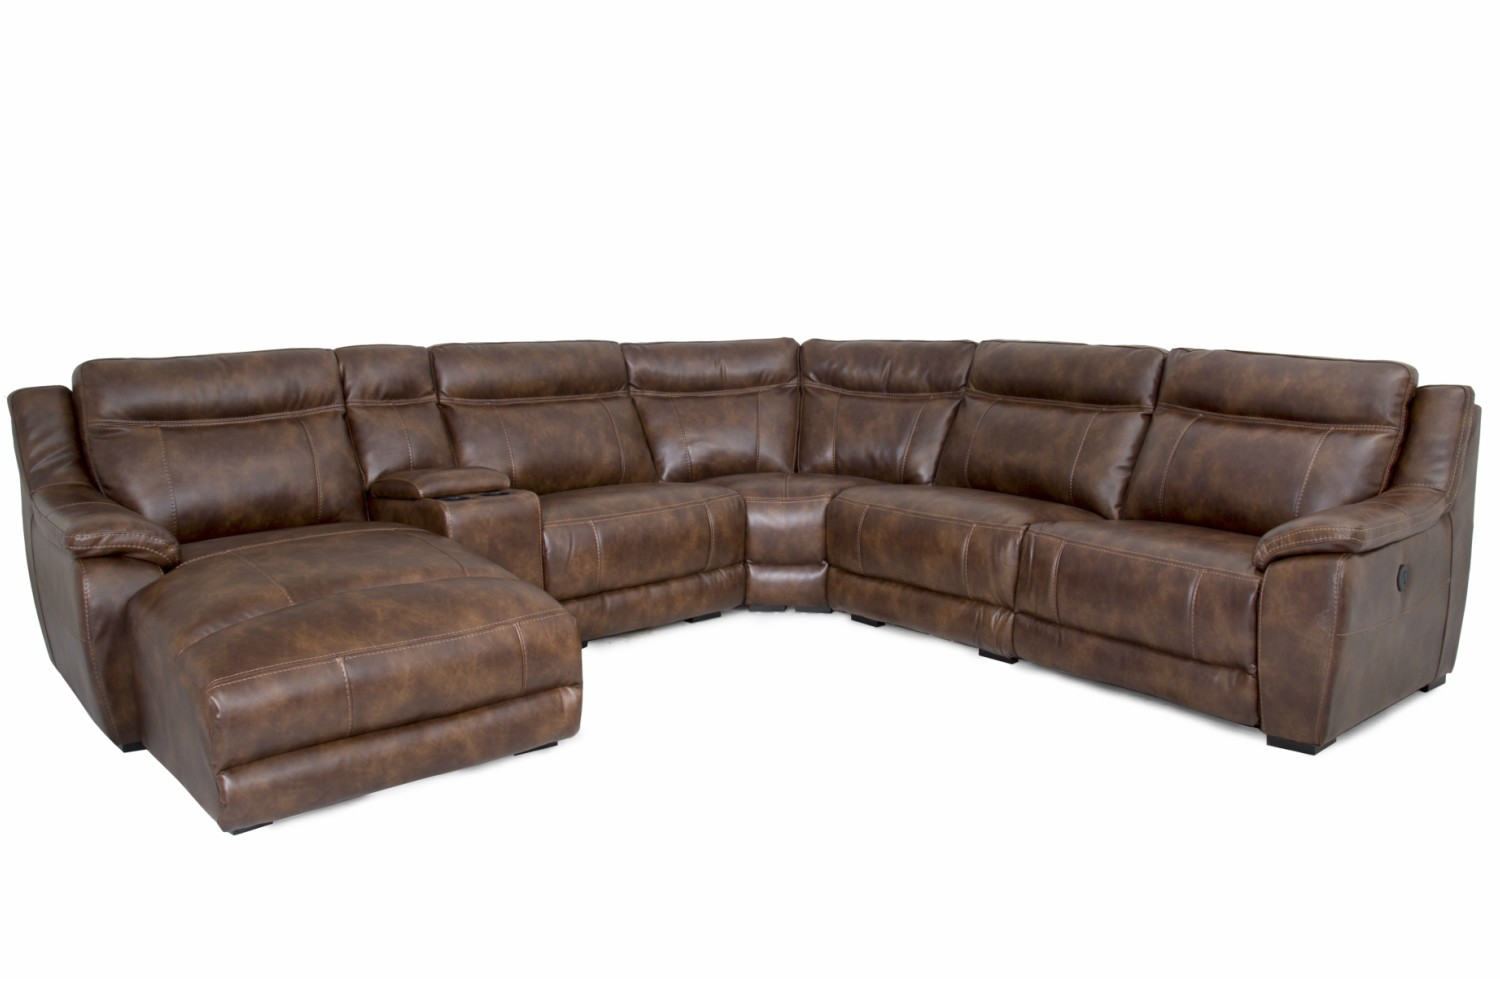 leather recliner chairs harvey norman couch and chair covers nz corner sofa sonny electric